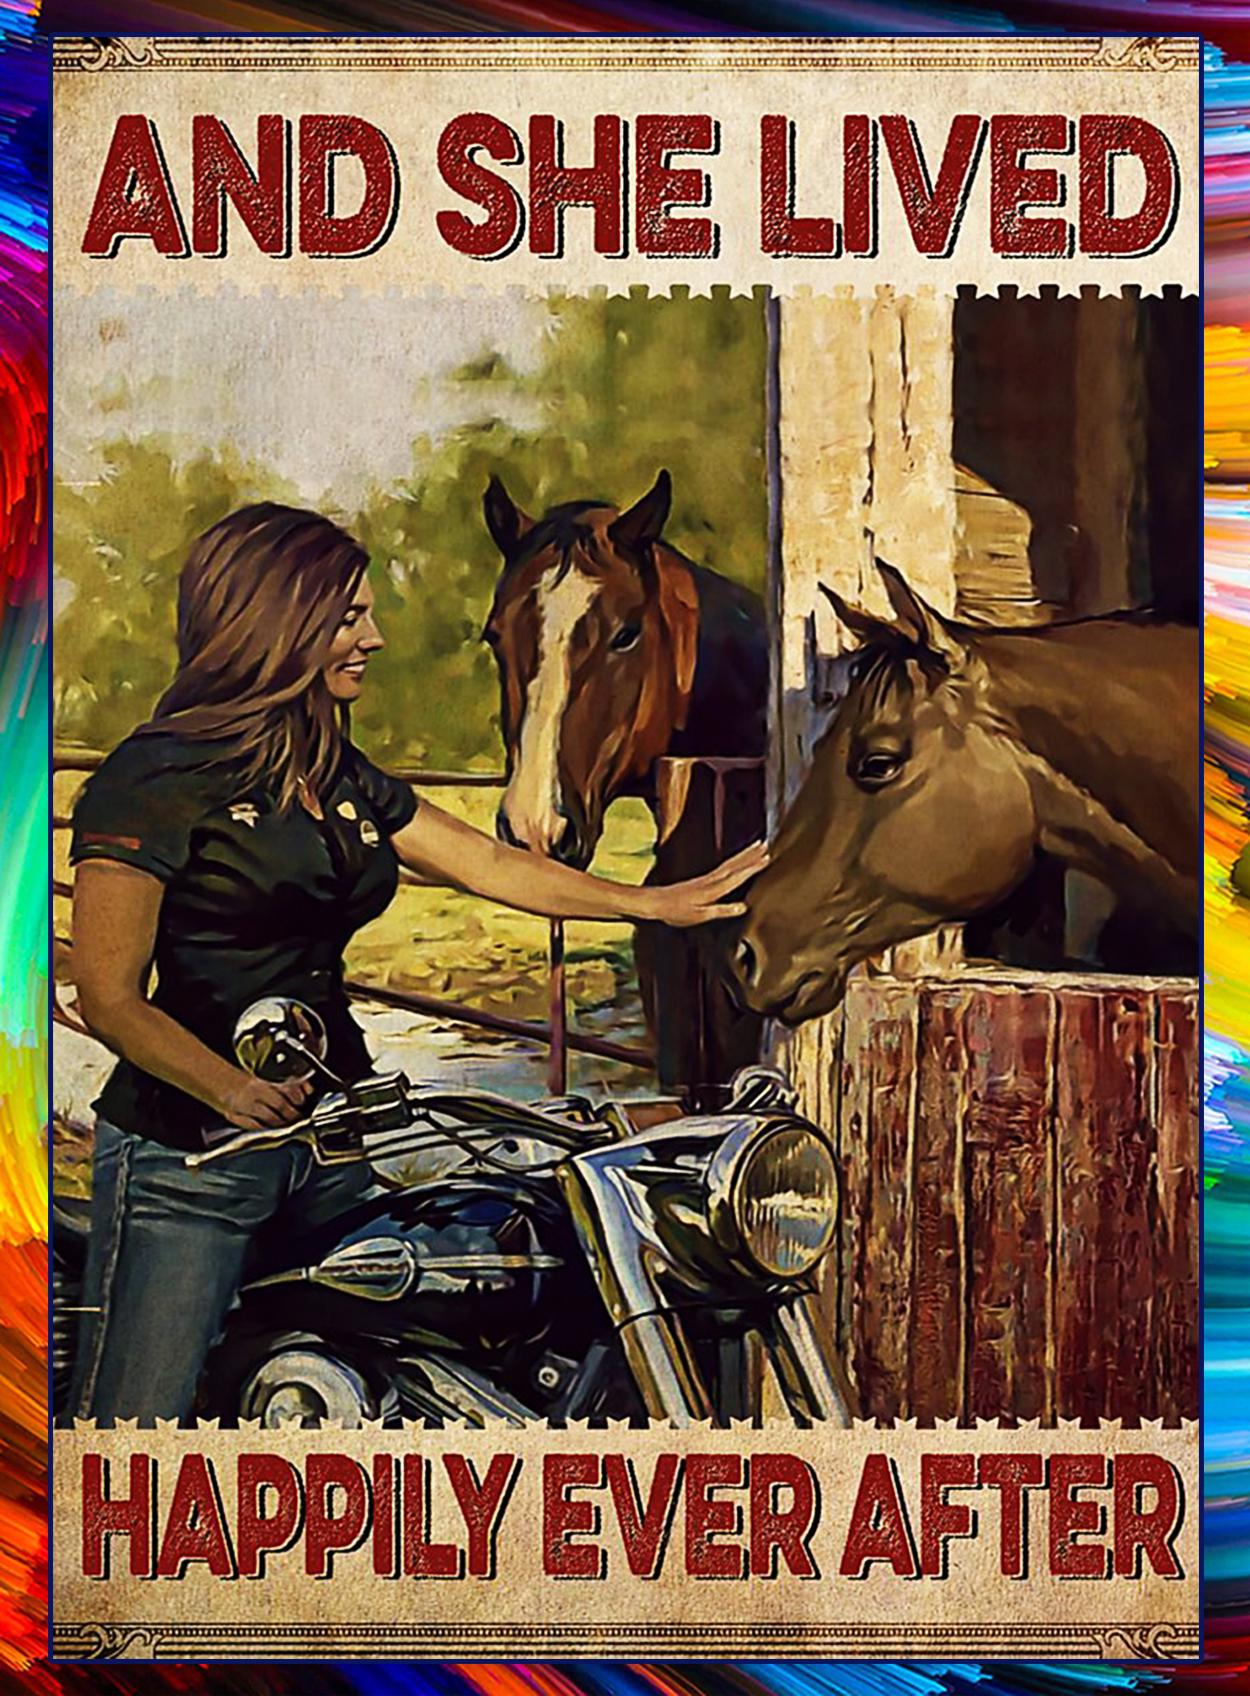 Biker horse and she lived happily ever after poster - A3